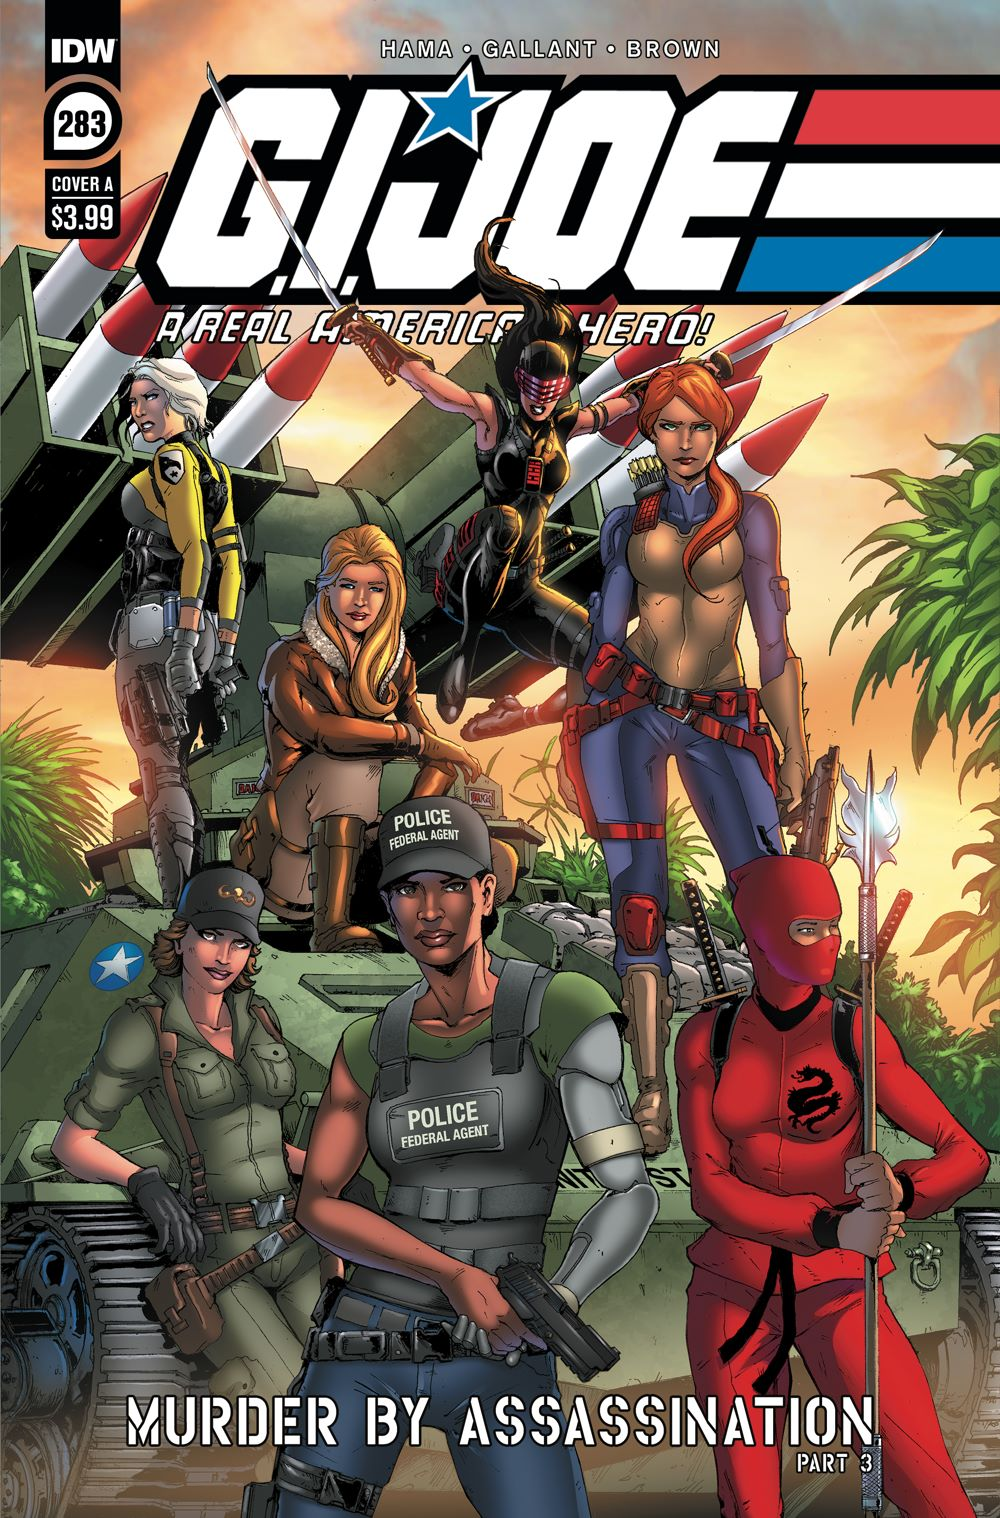 GIJoeRAH283-coverA ComicList: IDW Publishing New Releases for 06/16/2021